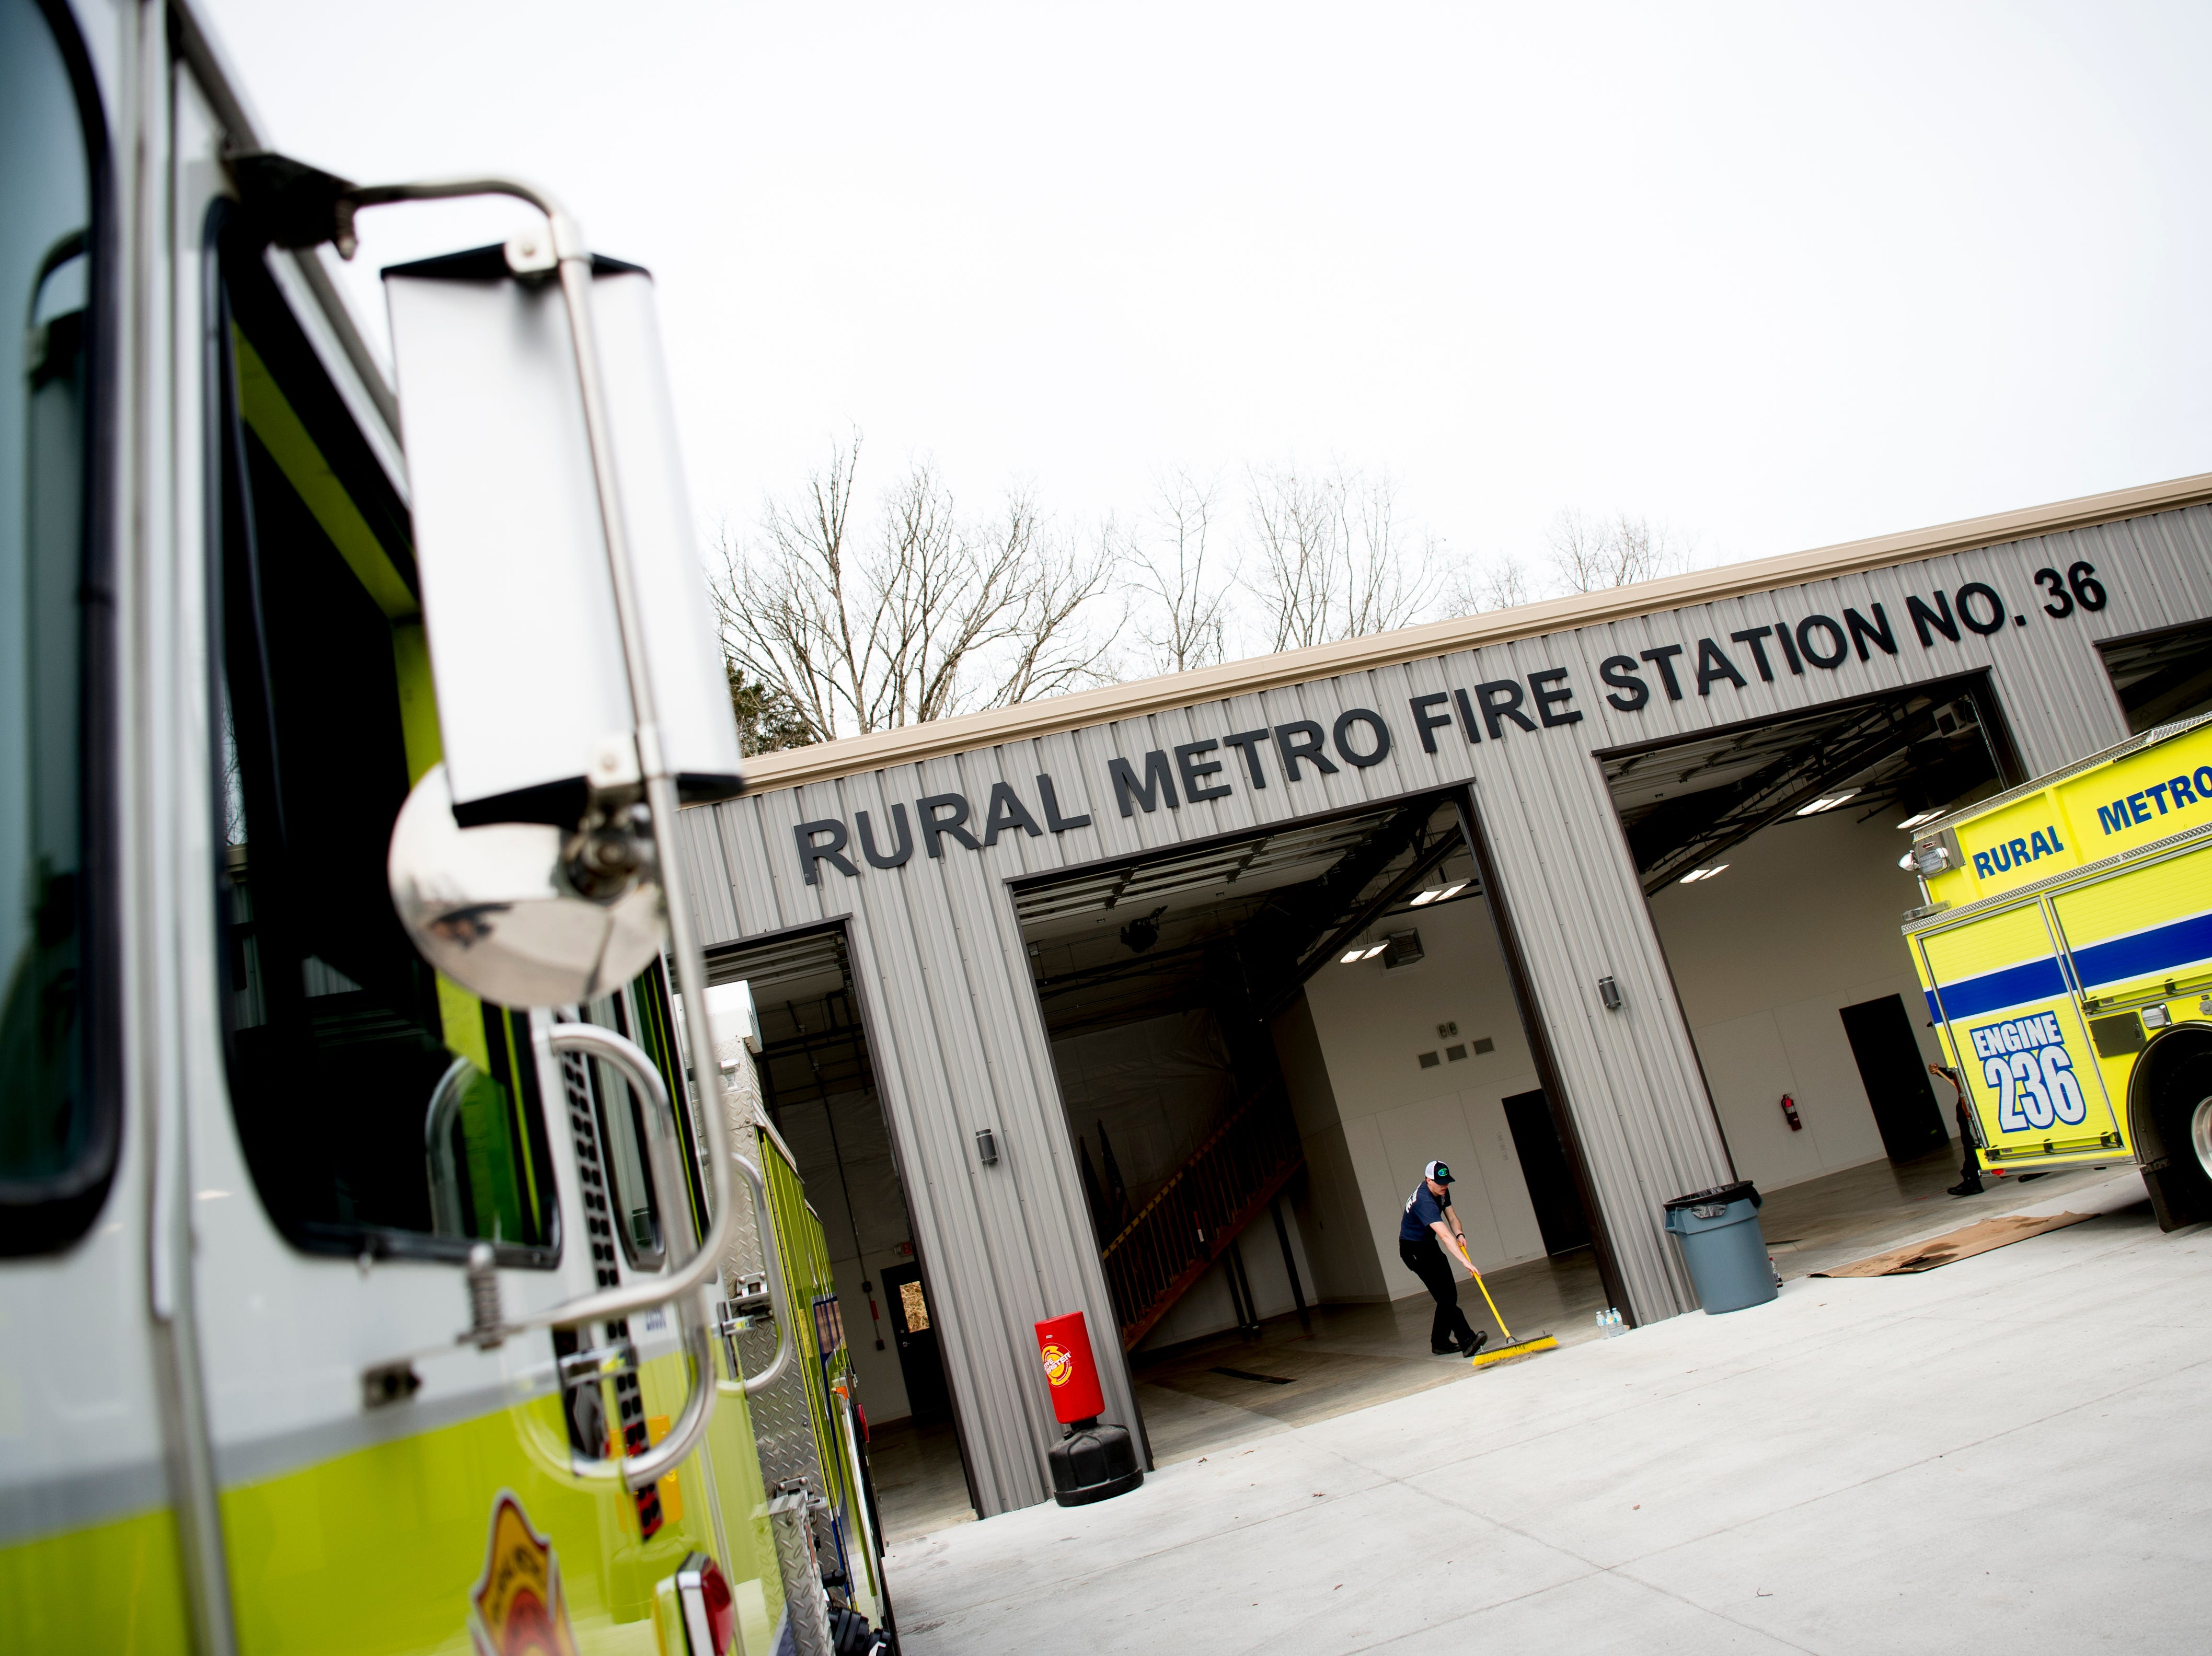 A view of the new Rural Metro Fire Station 36, 7615 Norman Jack Lane, in Powell, Tennessee on Wednesday, March 13, 2019. The station has been operational since early February and is hosting an open house and grand opening March 14 from 10am-7pm.